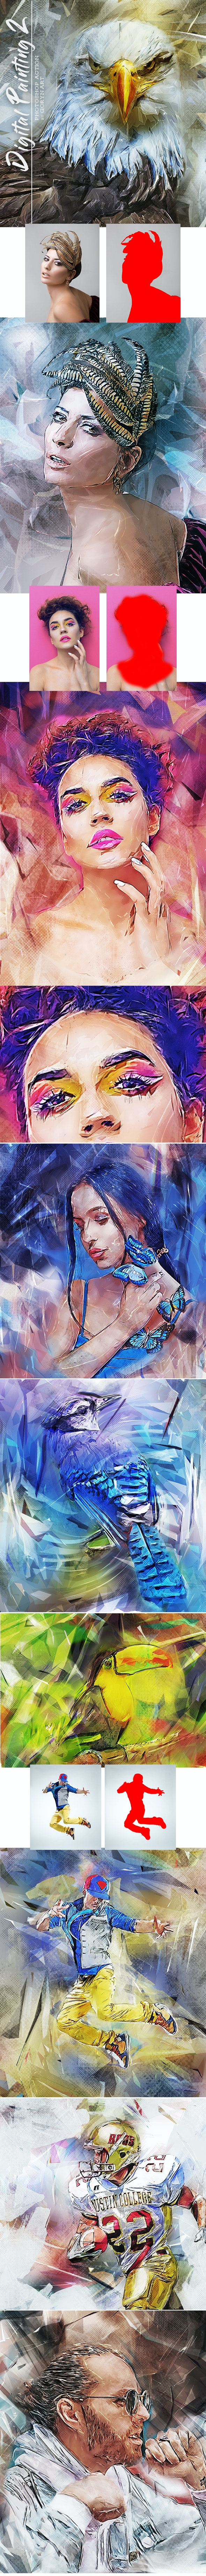 Digital Painting 2 Photoshop Action - Photo Effects Actions